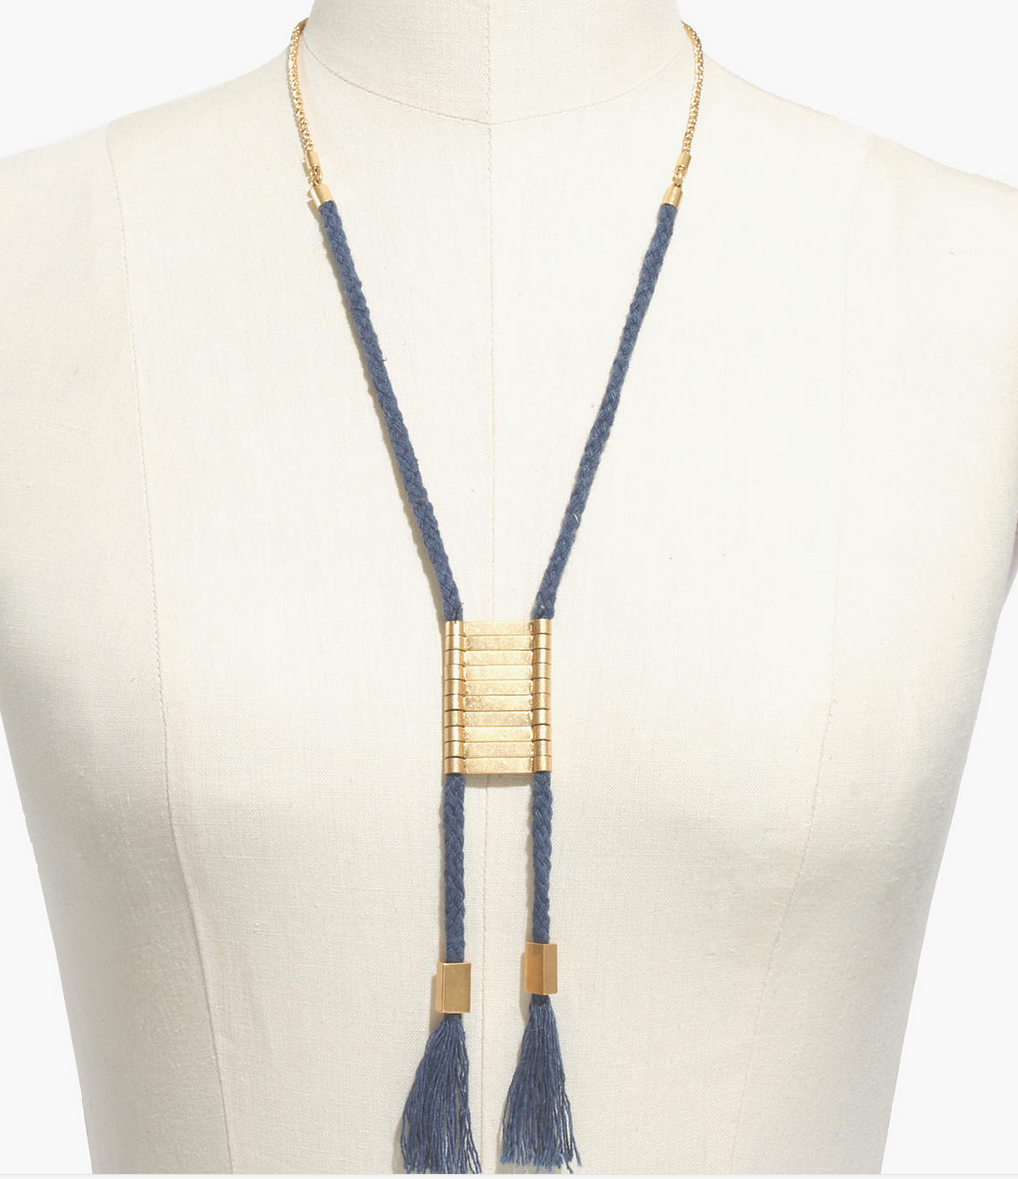 Madewell Ropeswing necklace- $14 (was $28)